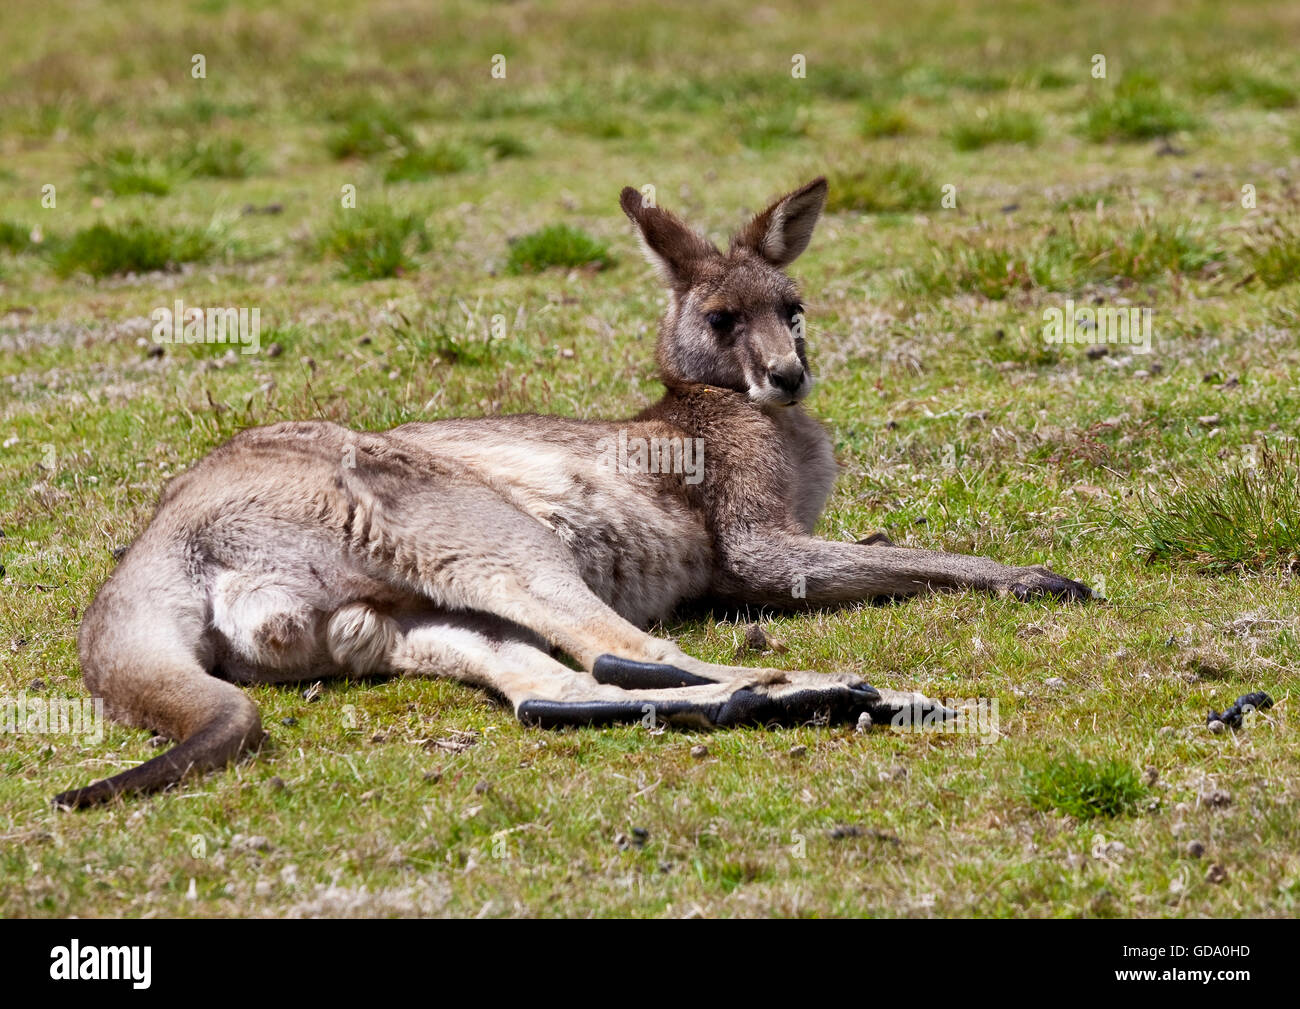 Kangourou mâle lying on grass Photo Stock